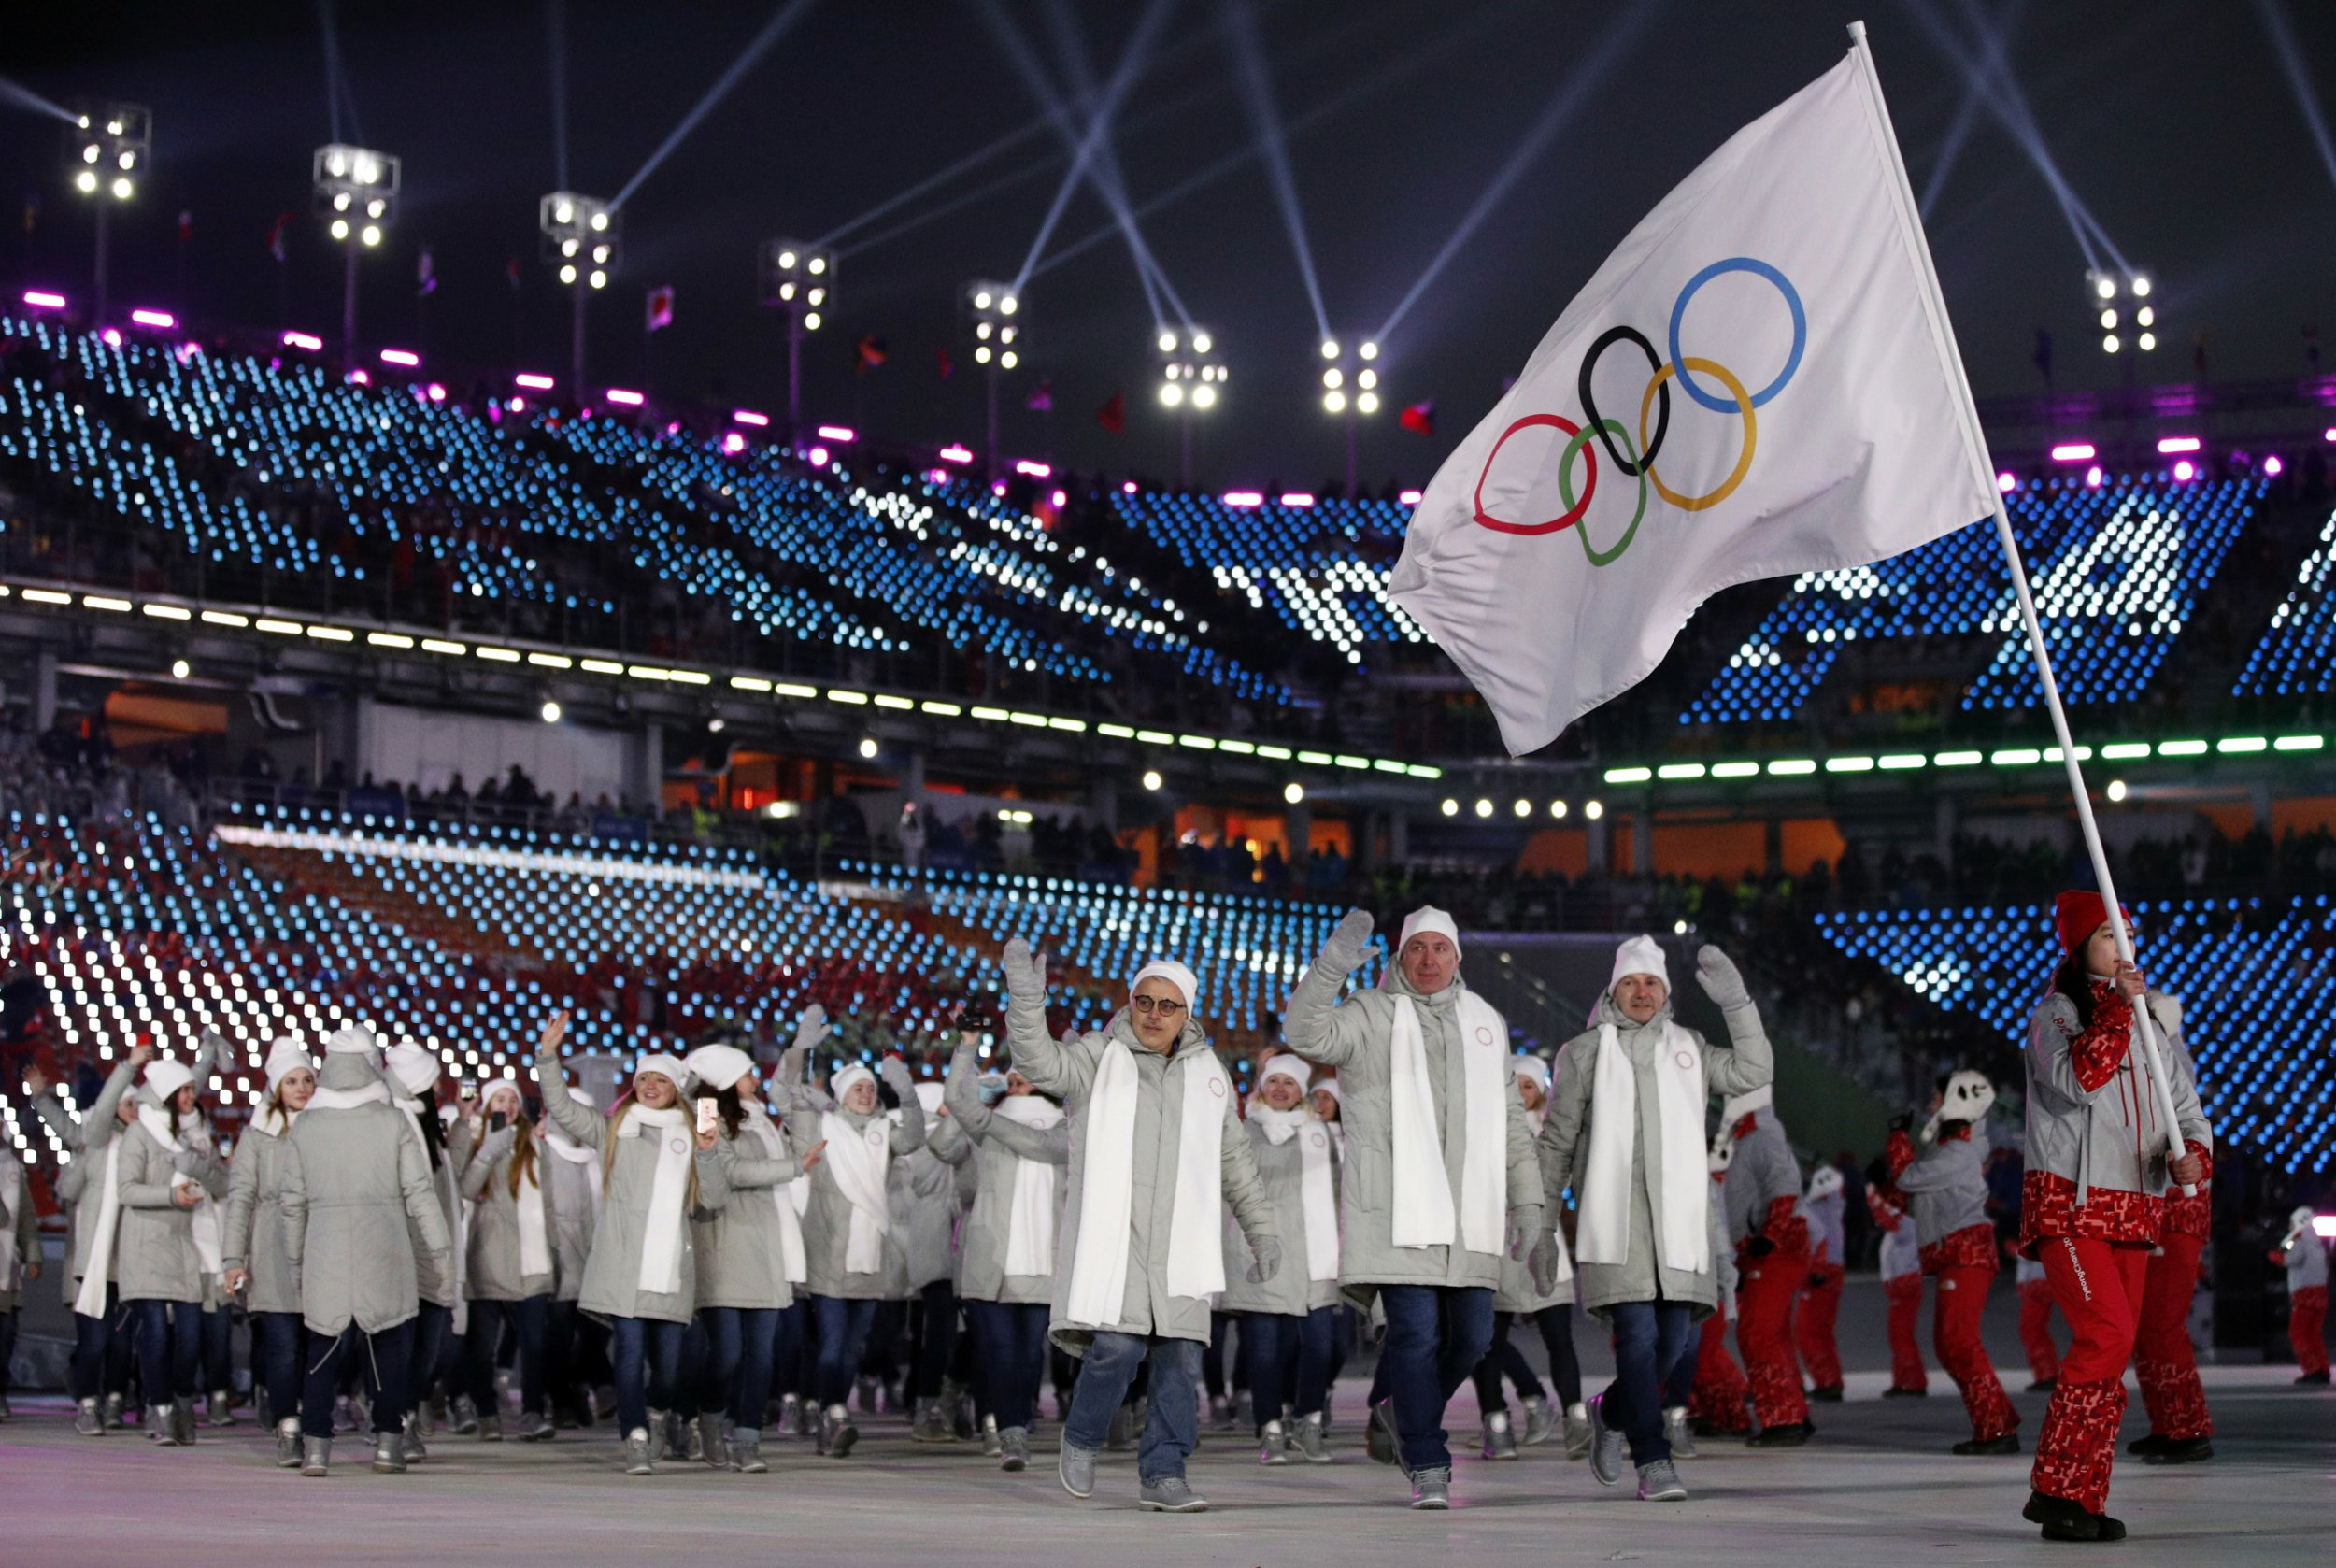 Russia's Olympic membership fully restored, IOC confirm